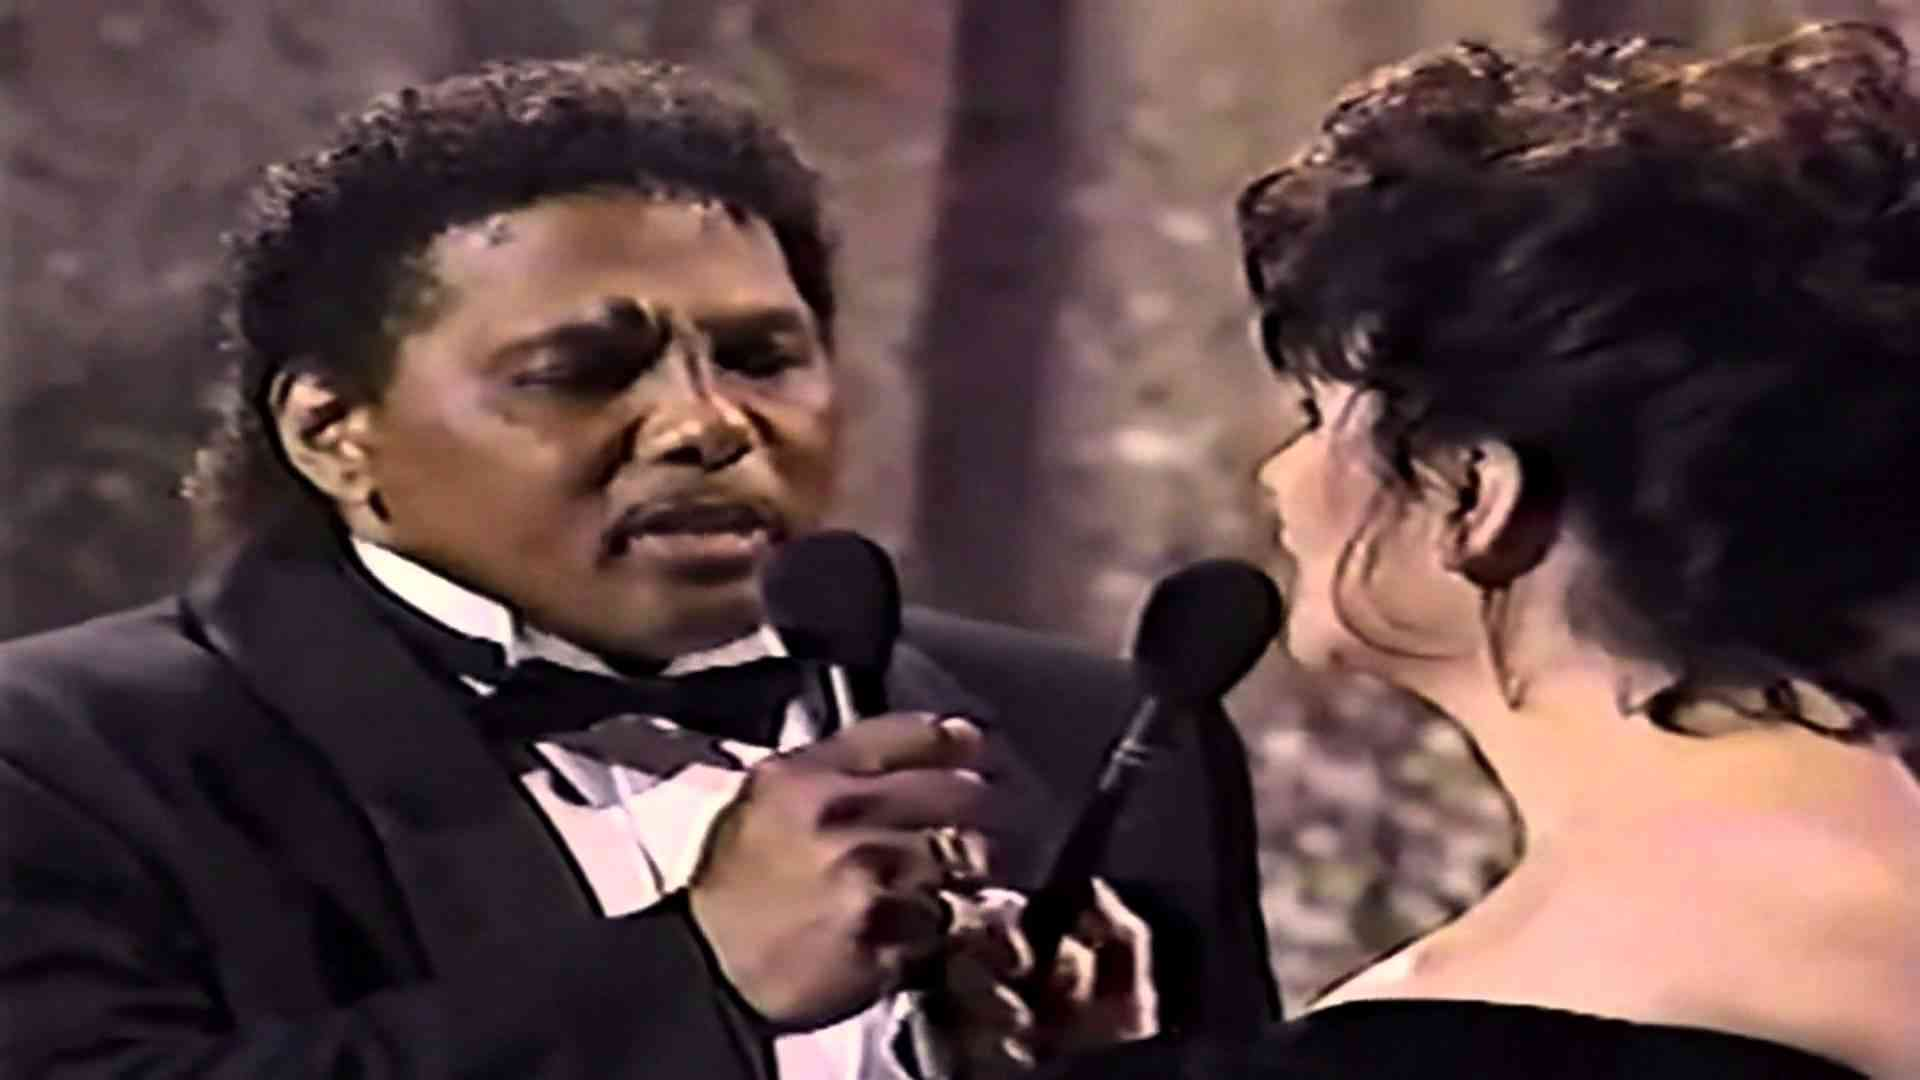 Linda Ronstadt feat. Aaron Neville - Don't know much ( live ) - YouTube